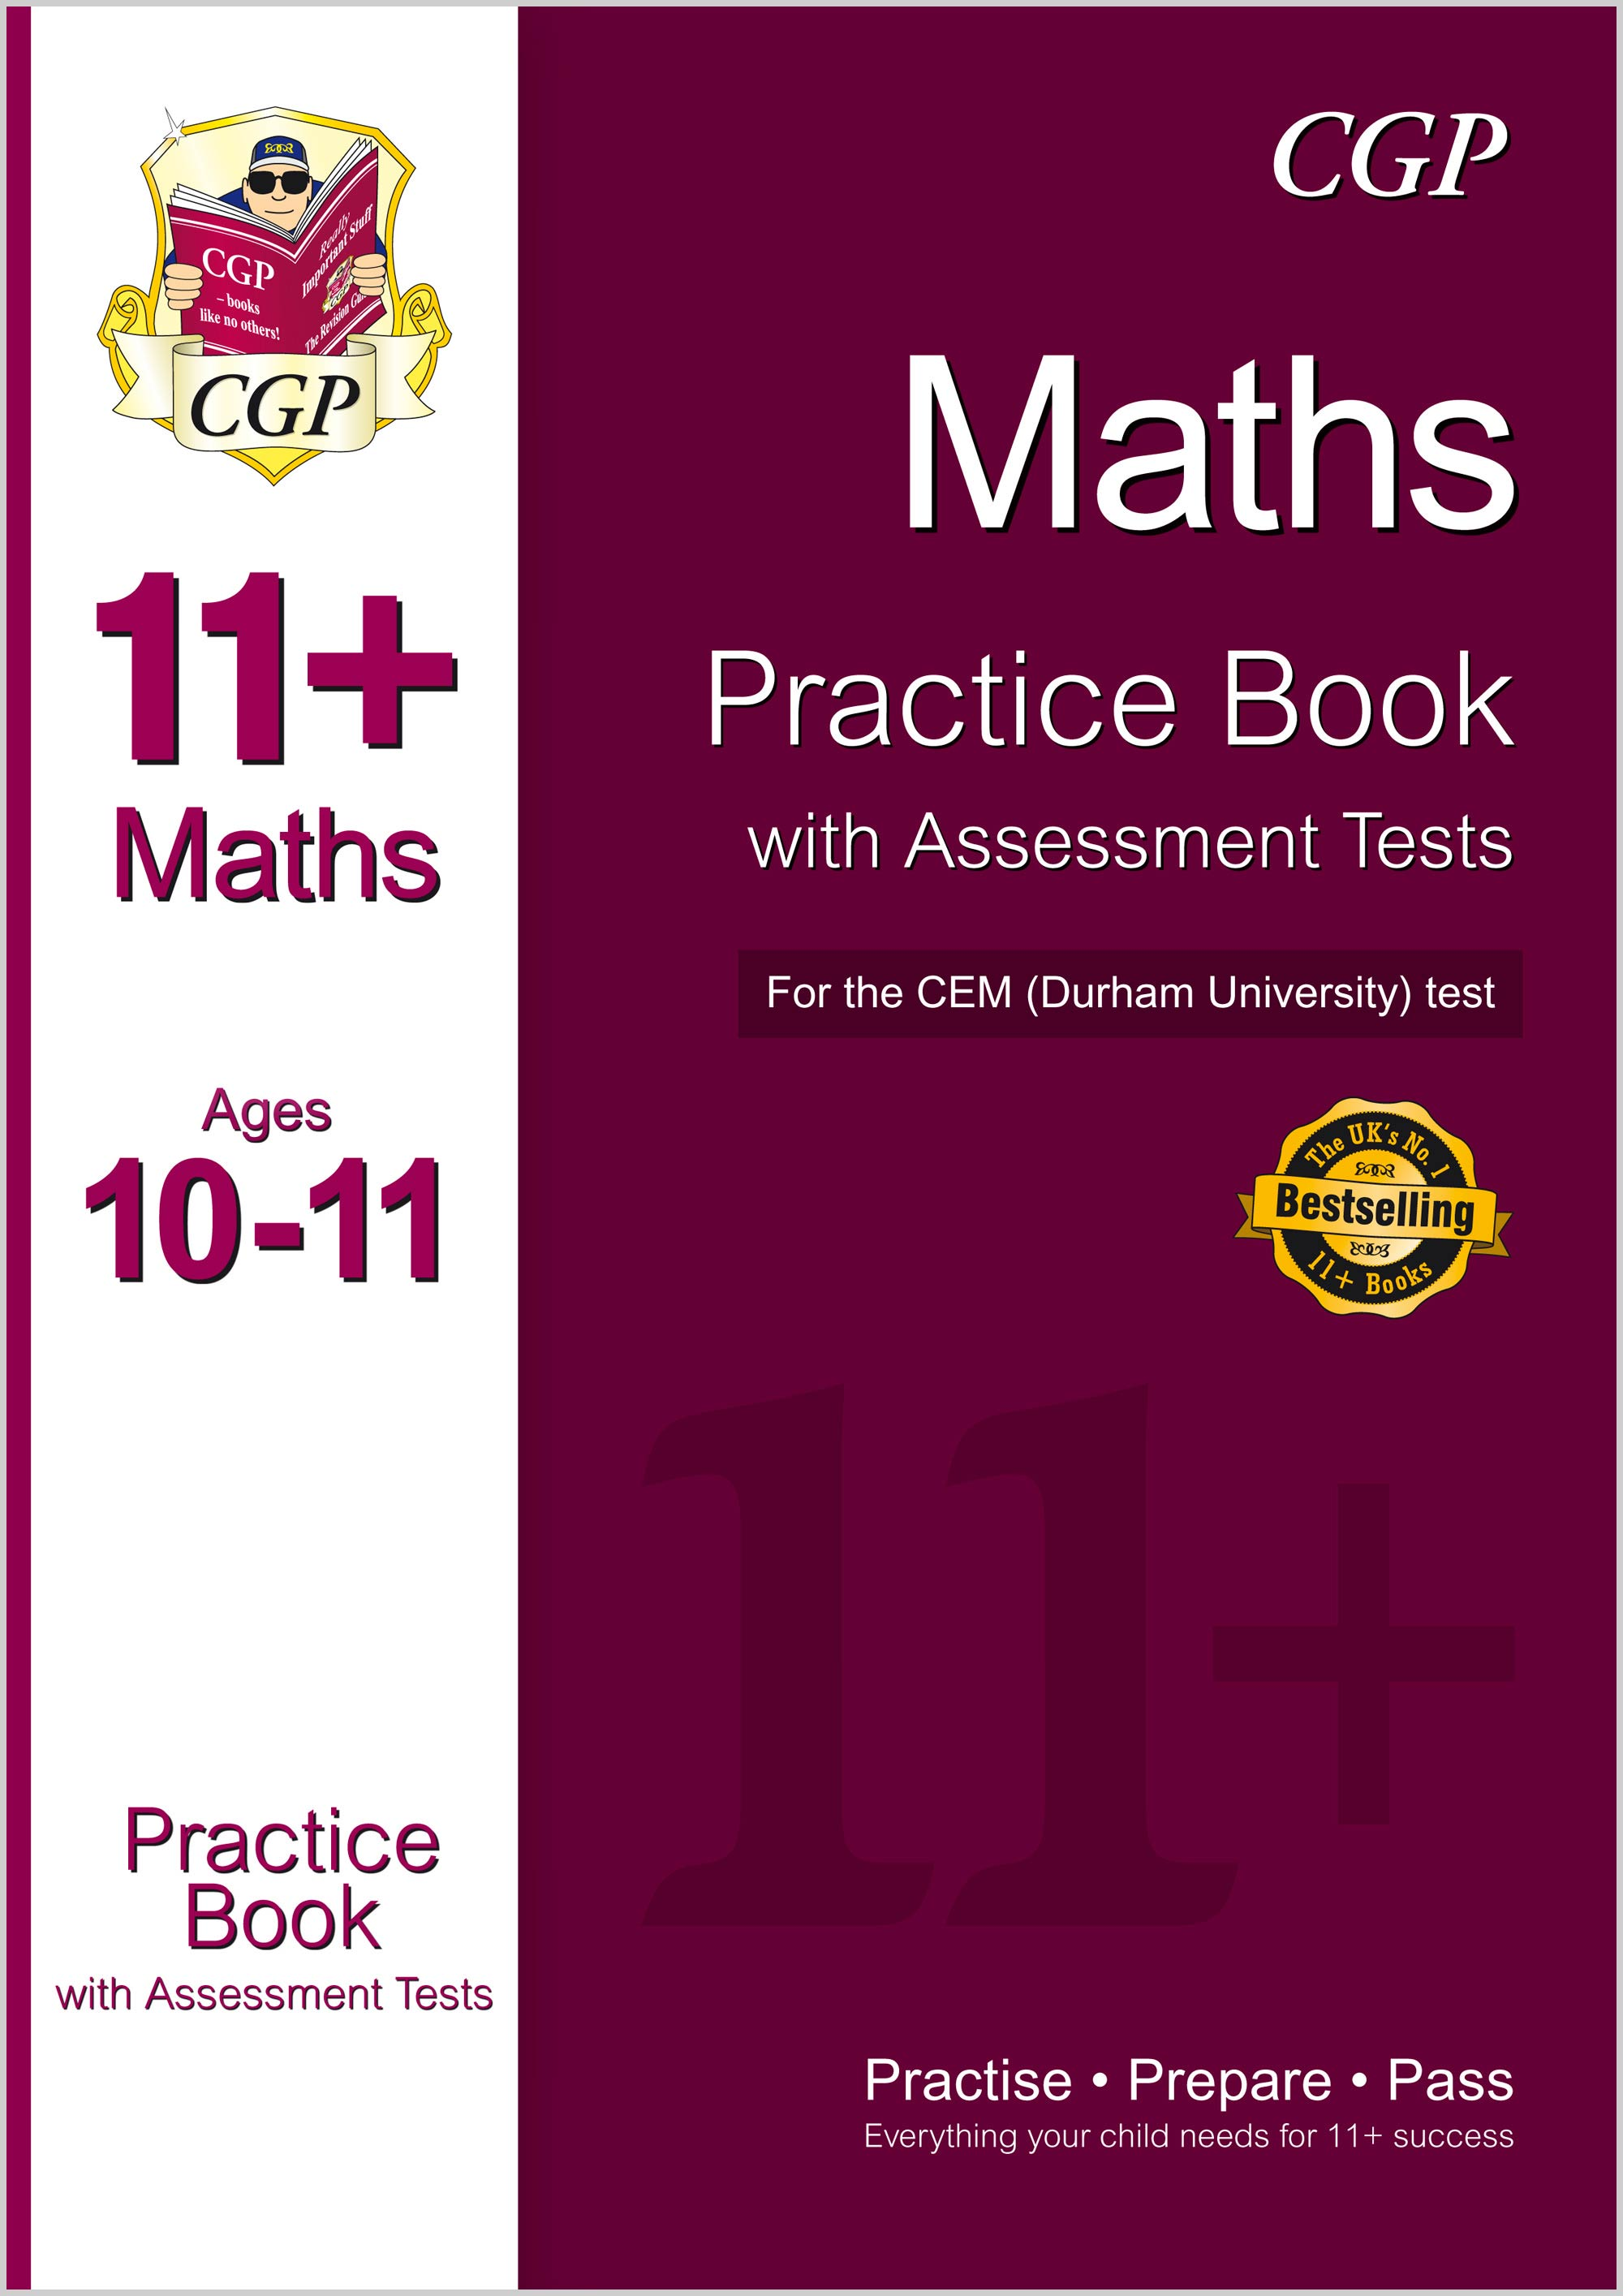 M6QDE1 - 11+ Maths Practice Book with Assessment Tests (Ages 10-11) for the CEM Test